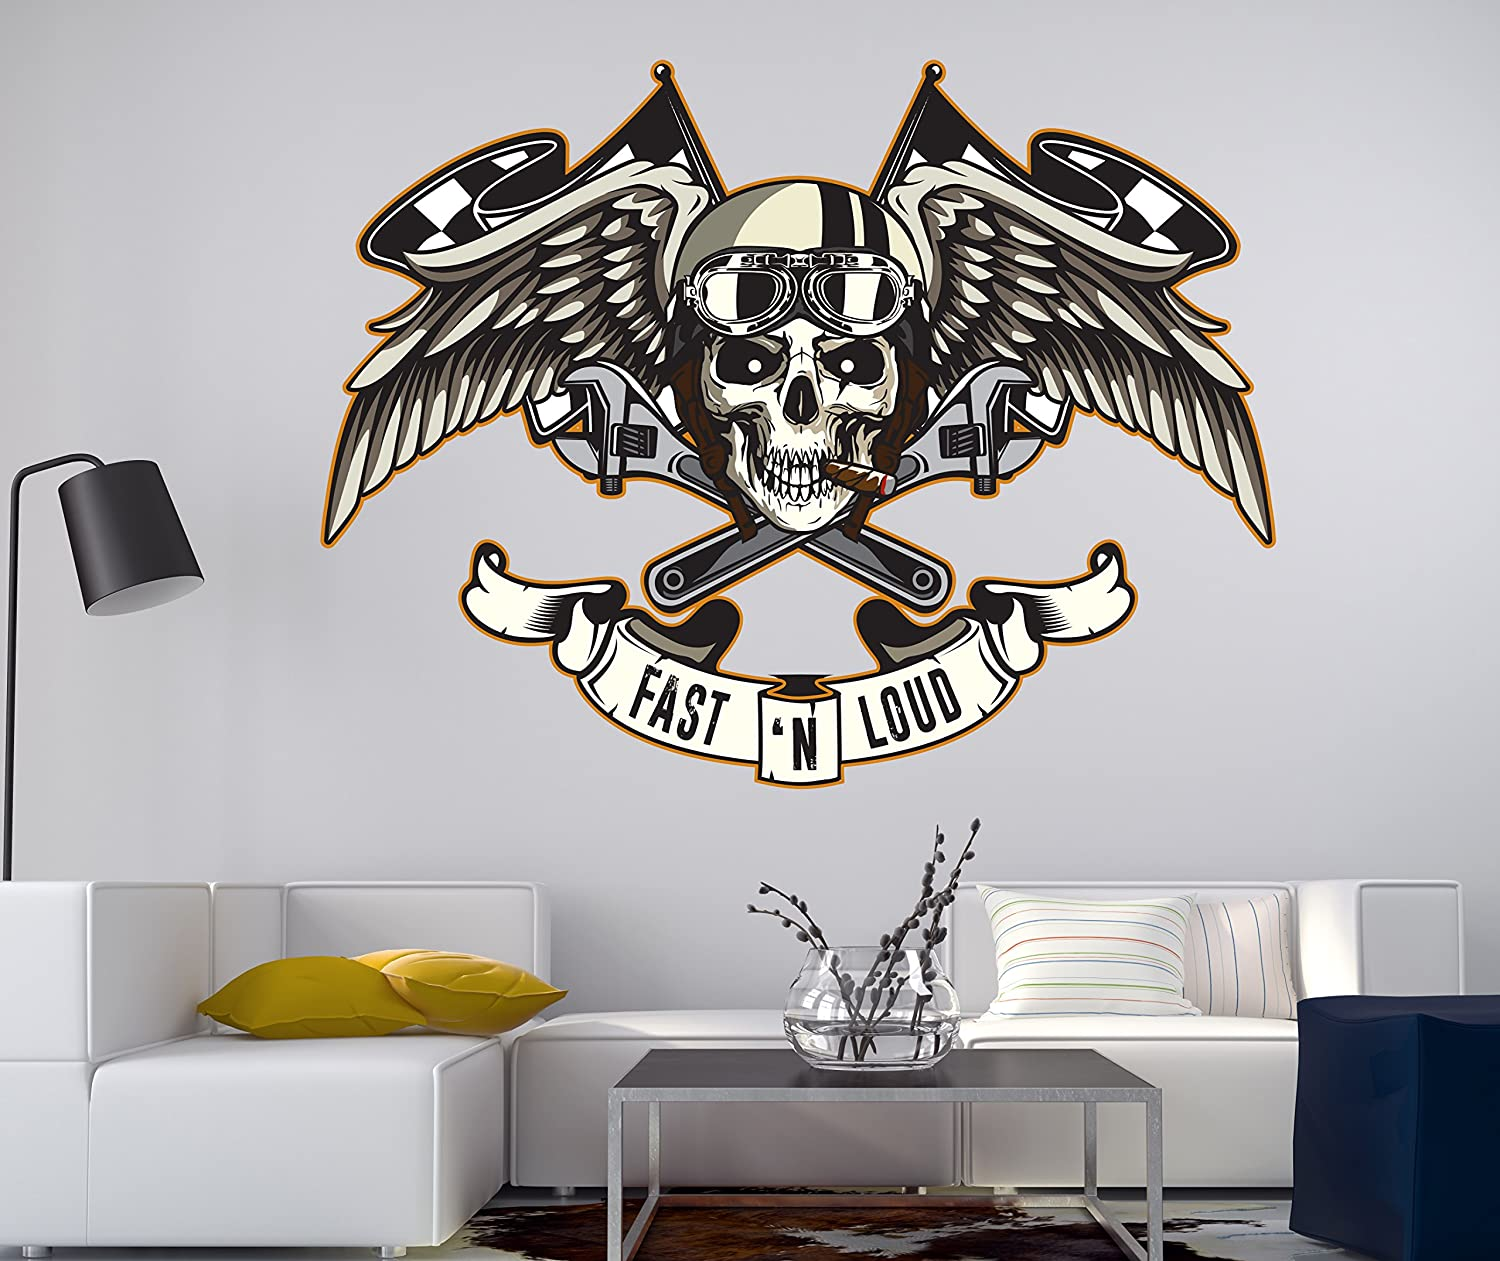 Amazon com biker skull wall decal motorcycle wall art vinyl riders wall decor cg059 42 width x 35 height home kitchen